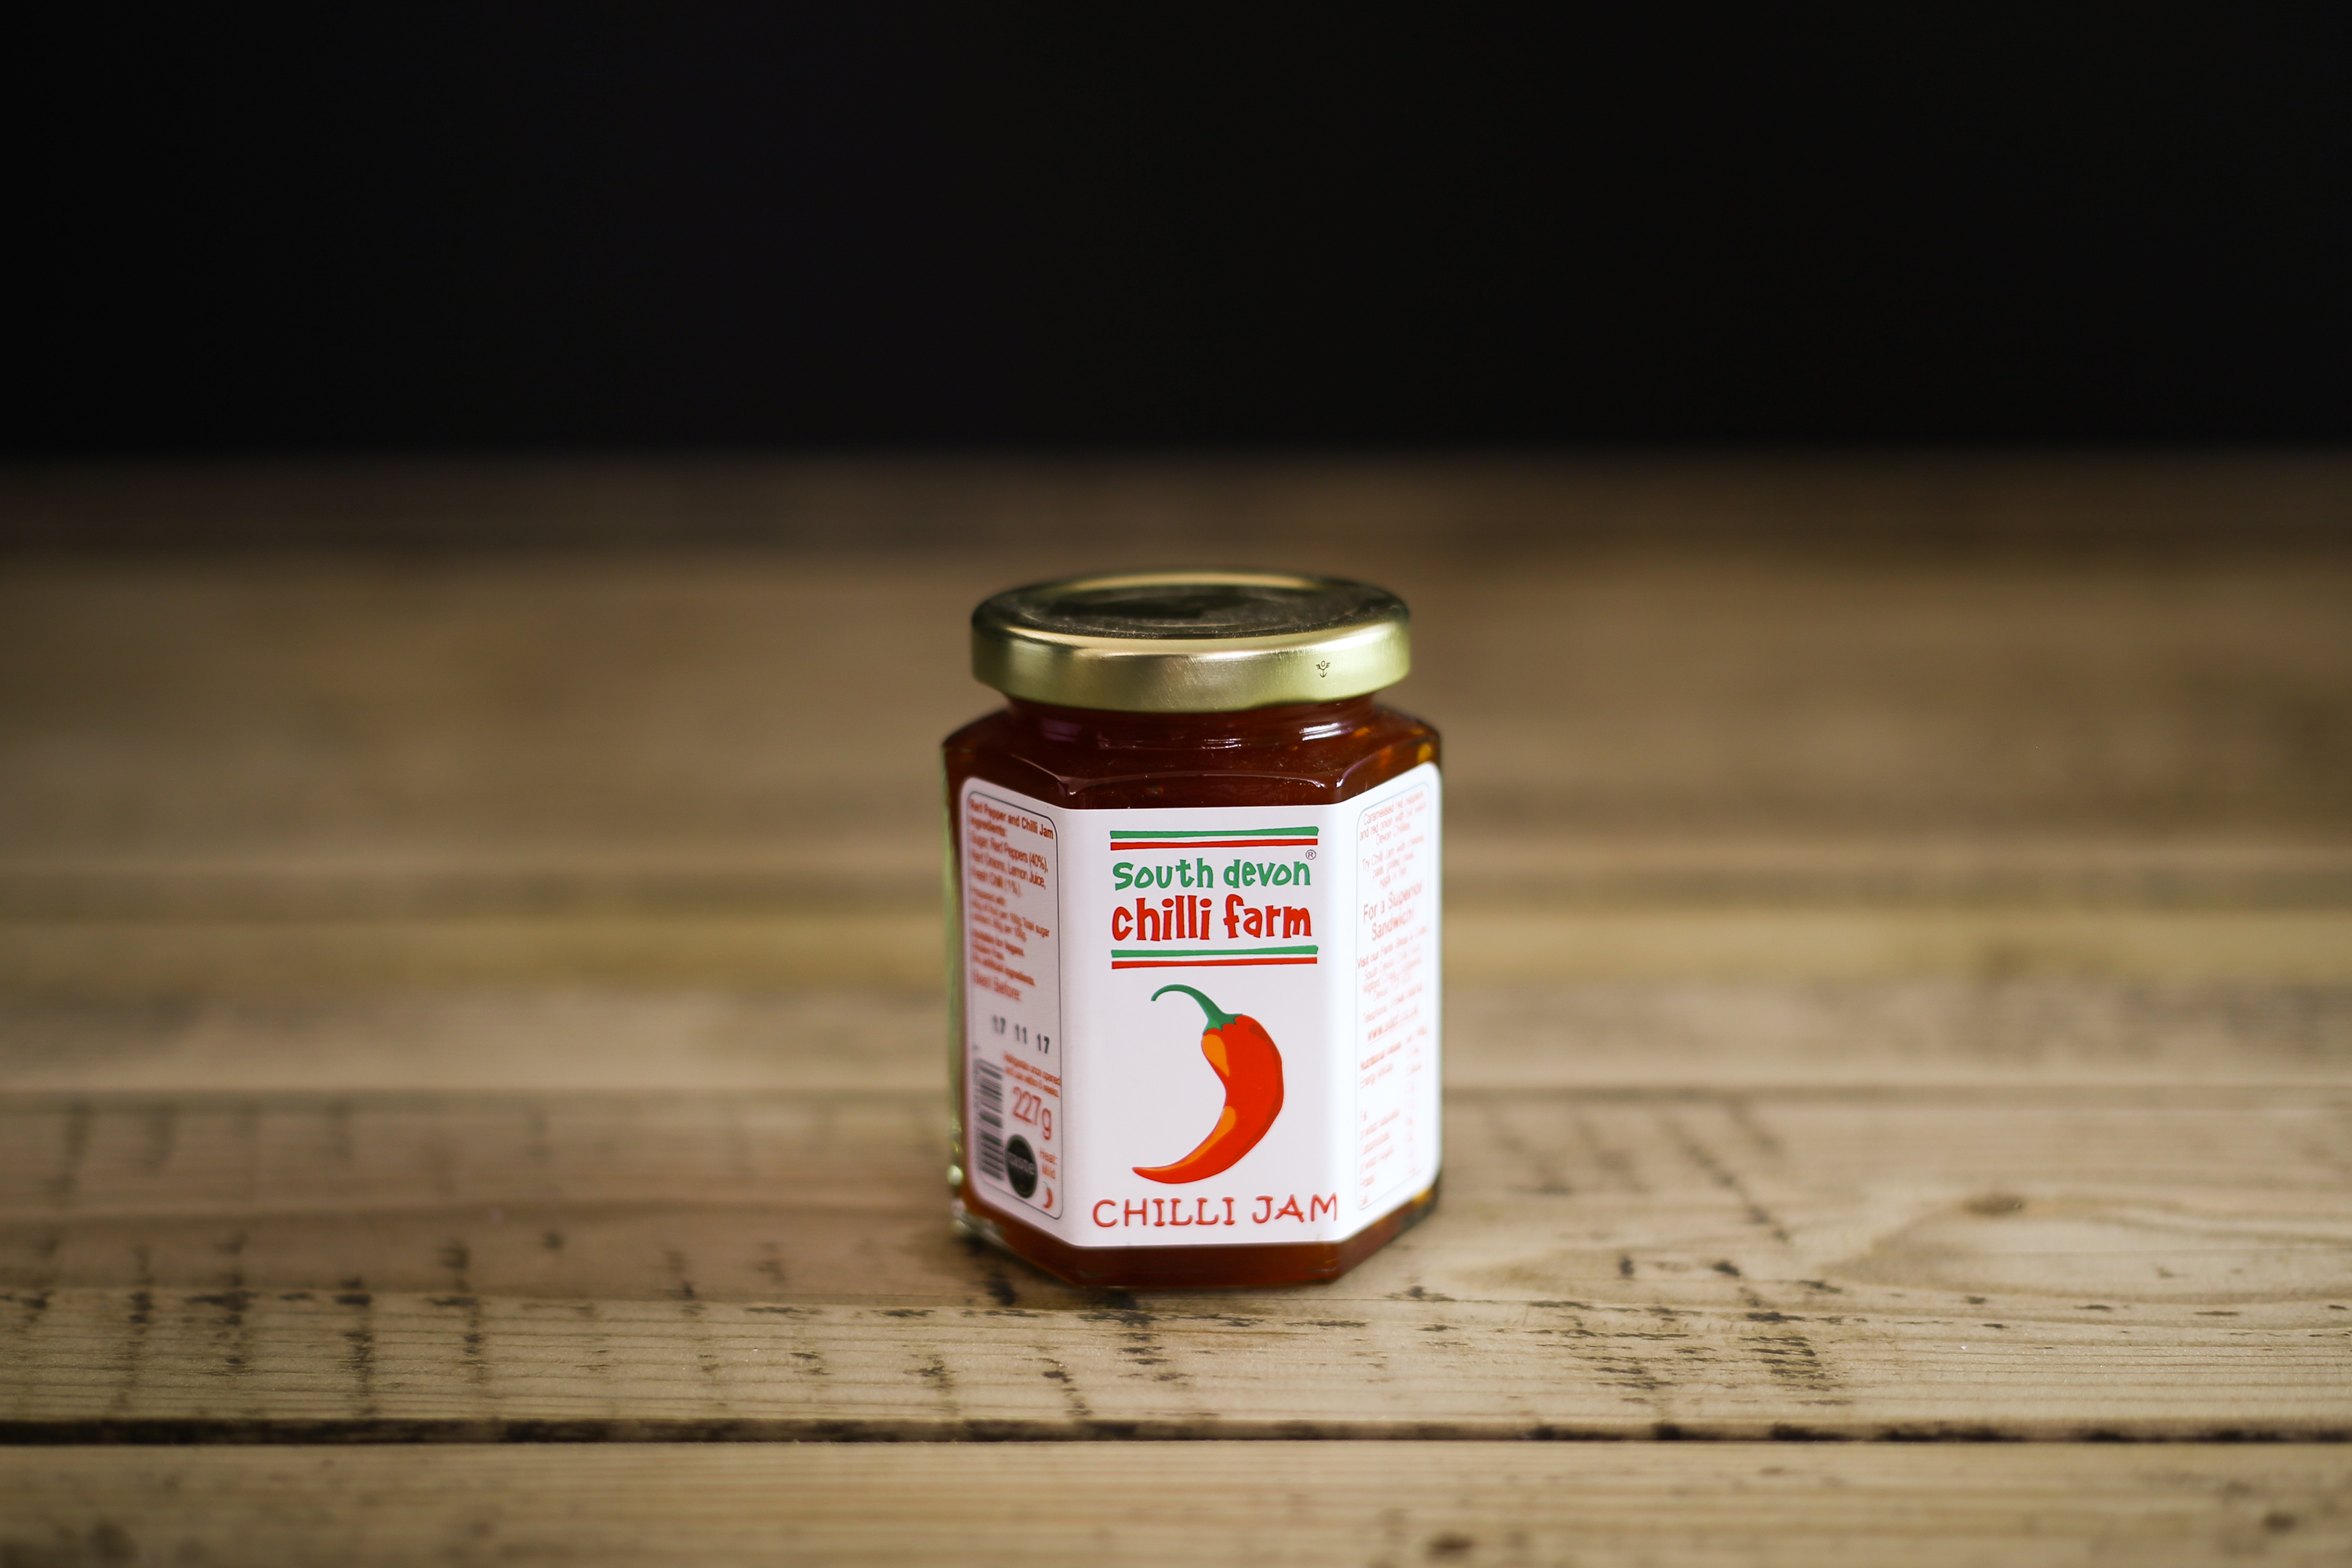 South Devon Chilli Farm Chilli Jam